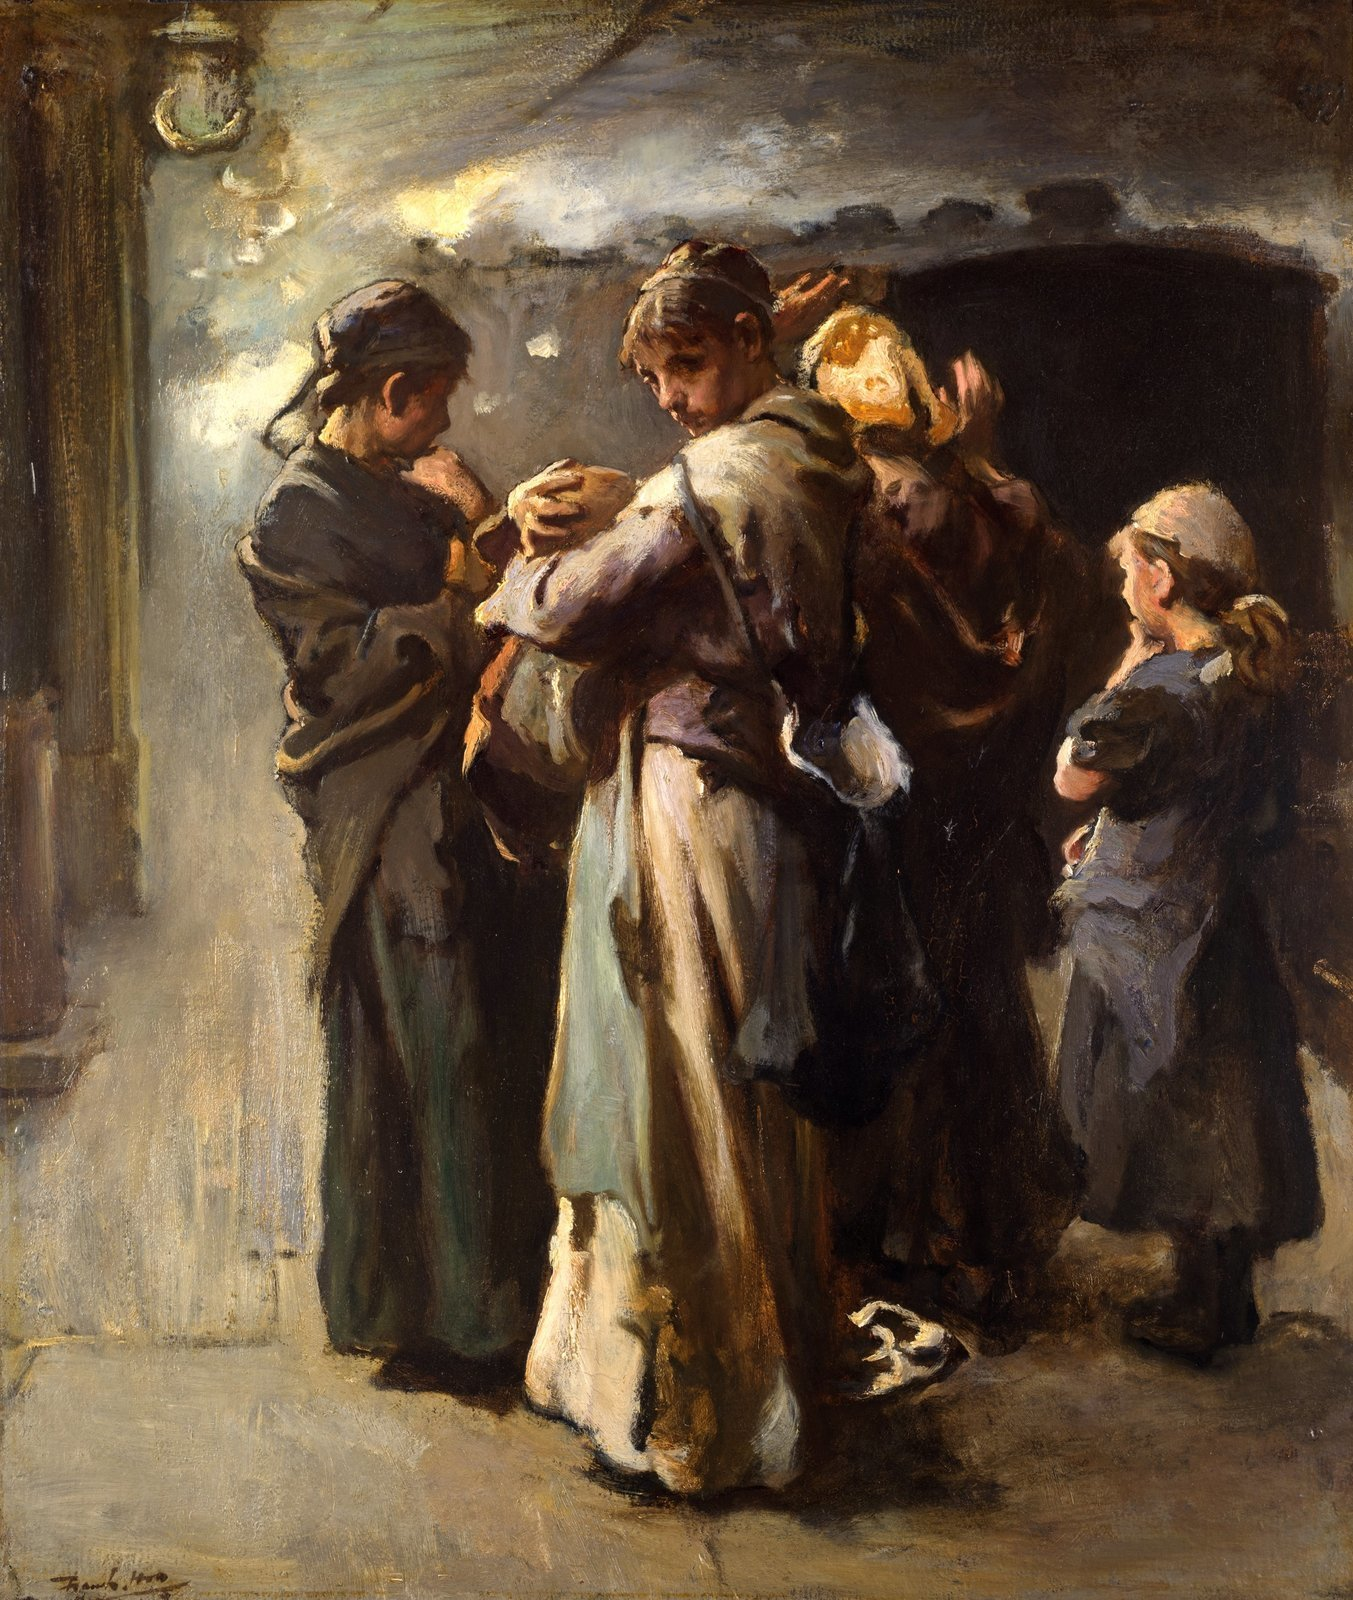 'Gone', a scene in Euston station, Frank Holl 'Gone', a scene in Euston station of a group of women and children left behind as the train taking departing emigrants leaves for Liverpool, oil on board, signed Frank Holl, c.1877, Geffrye Museum , In Copyright